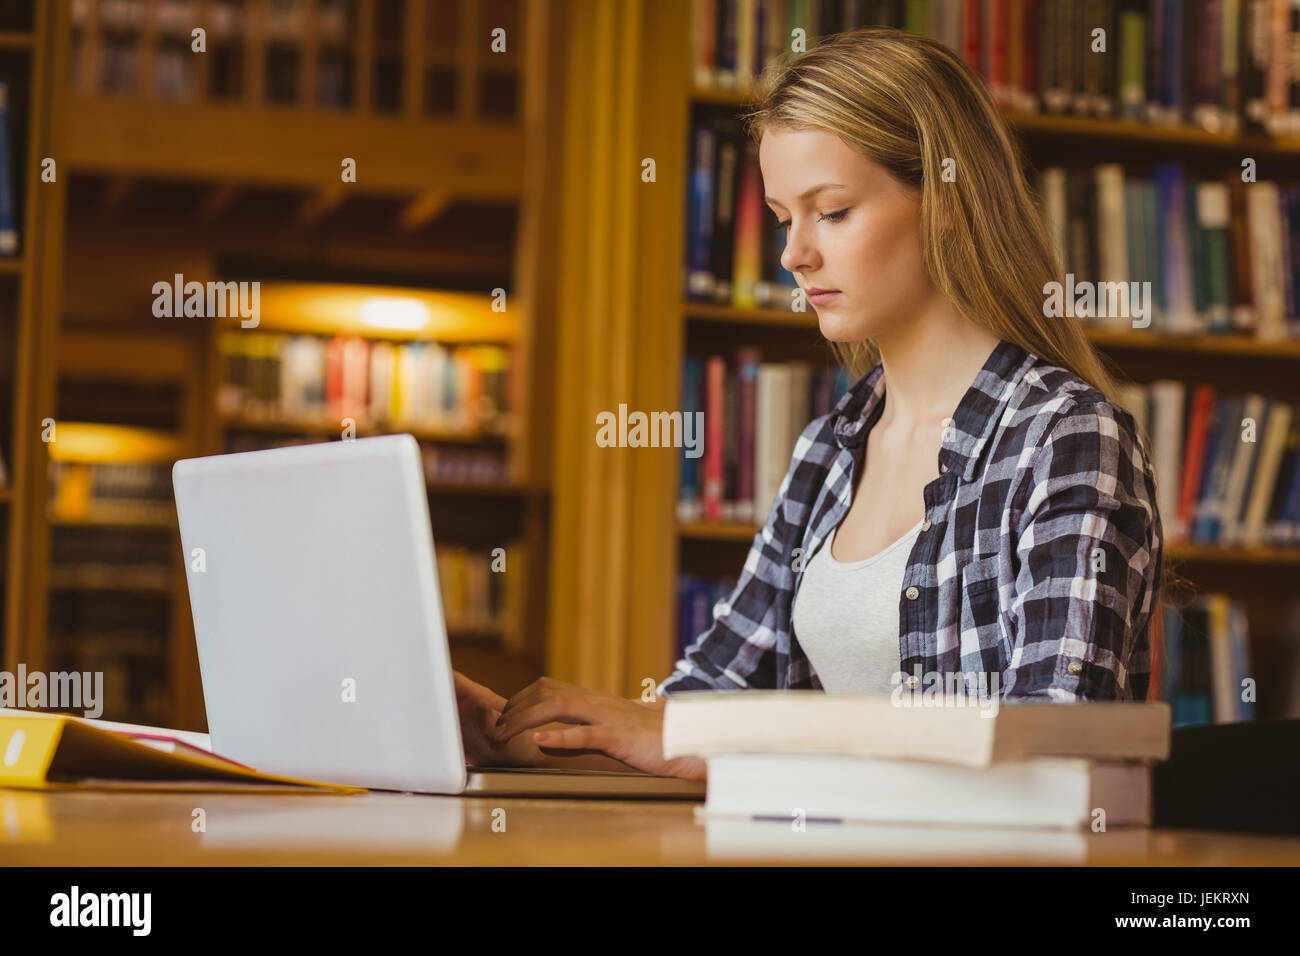 Serious student working on laptop - Stock Image